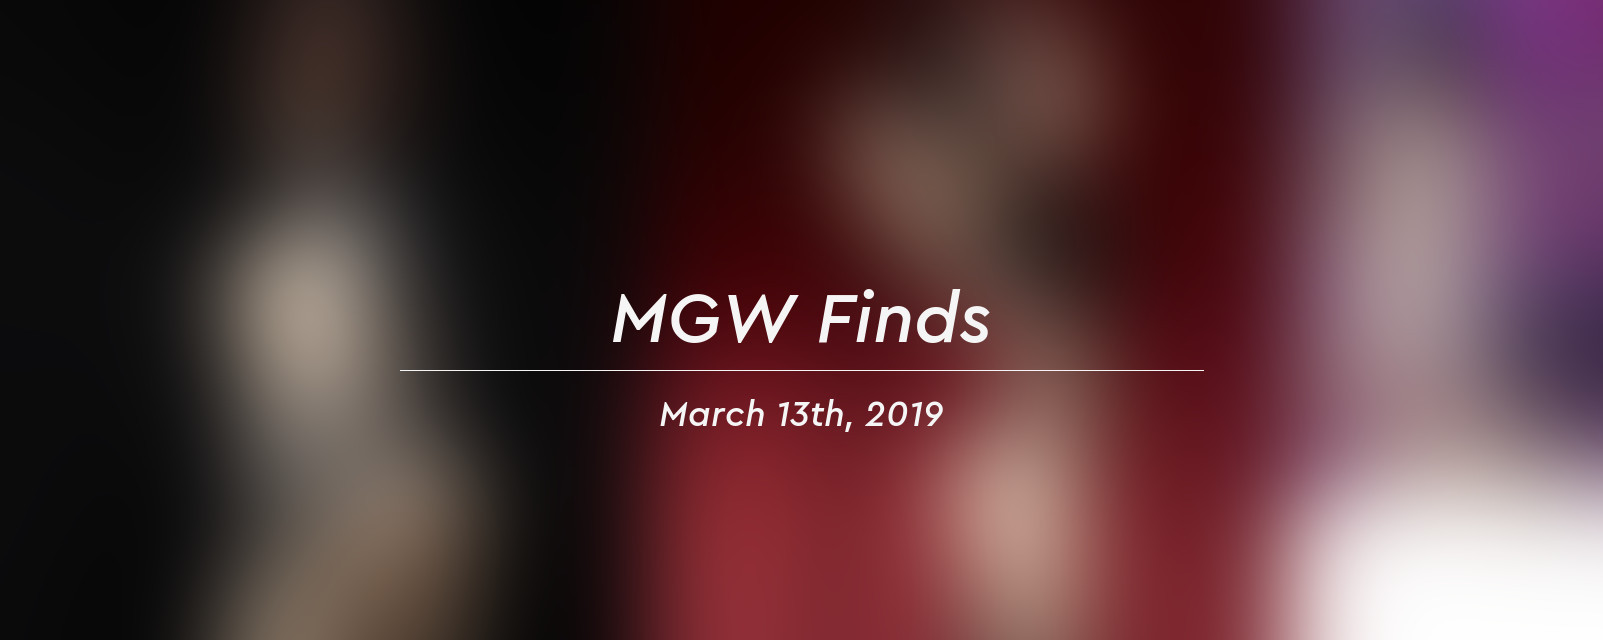 mgw finds 2019 03 13 header